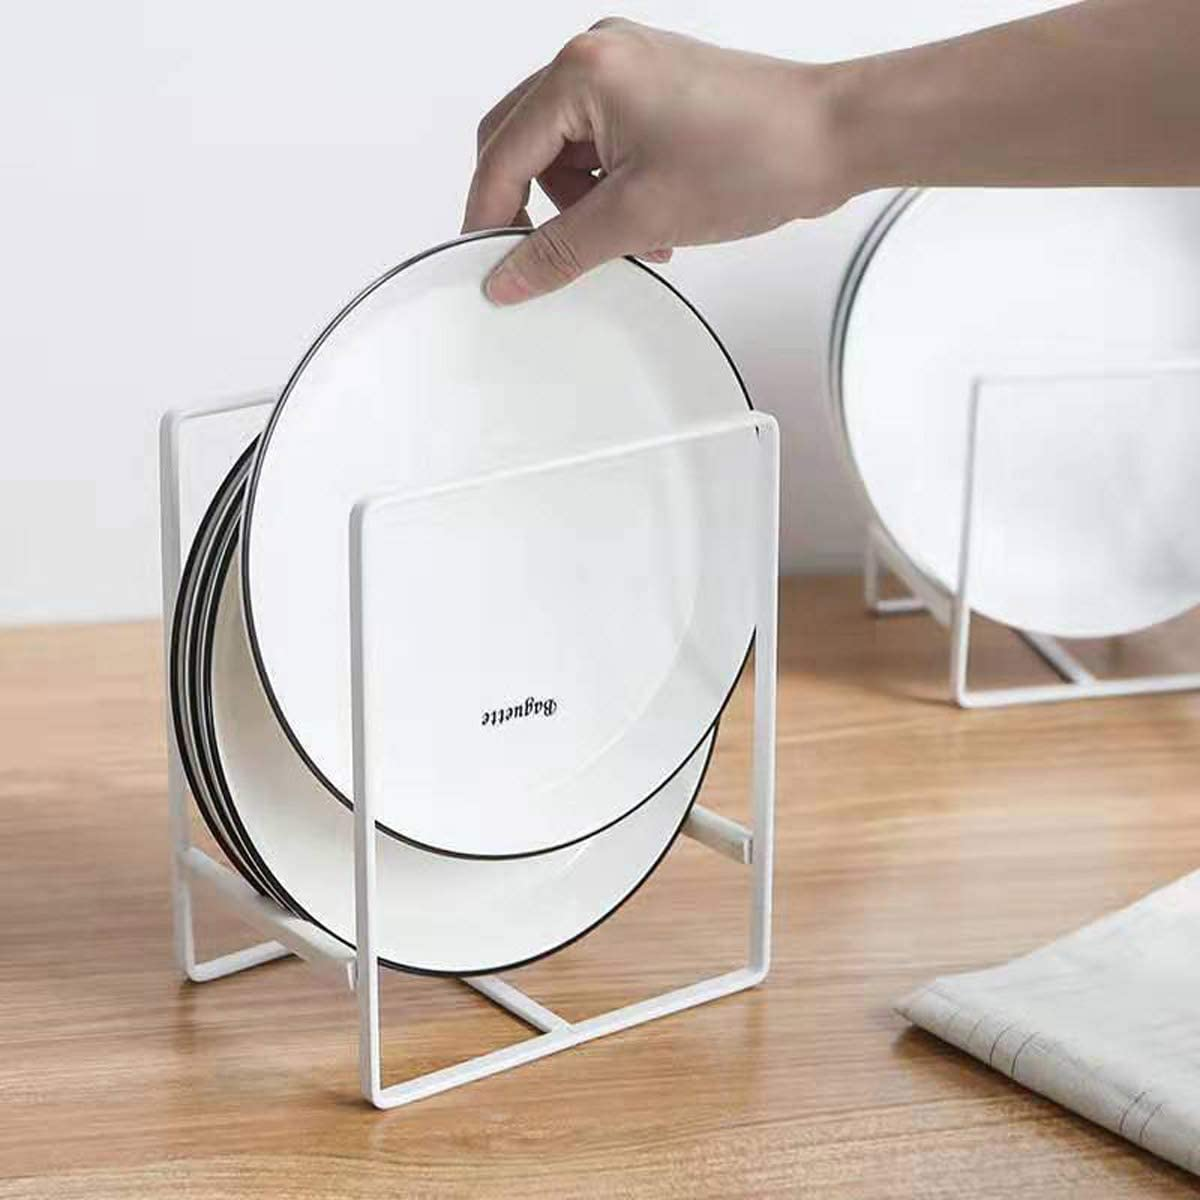 Plate Holders Max 47% OFF Organizer for Kitchen Storage Dish Dis Dying Metal Austin Mall